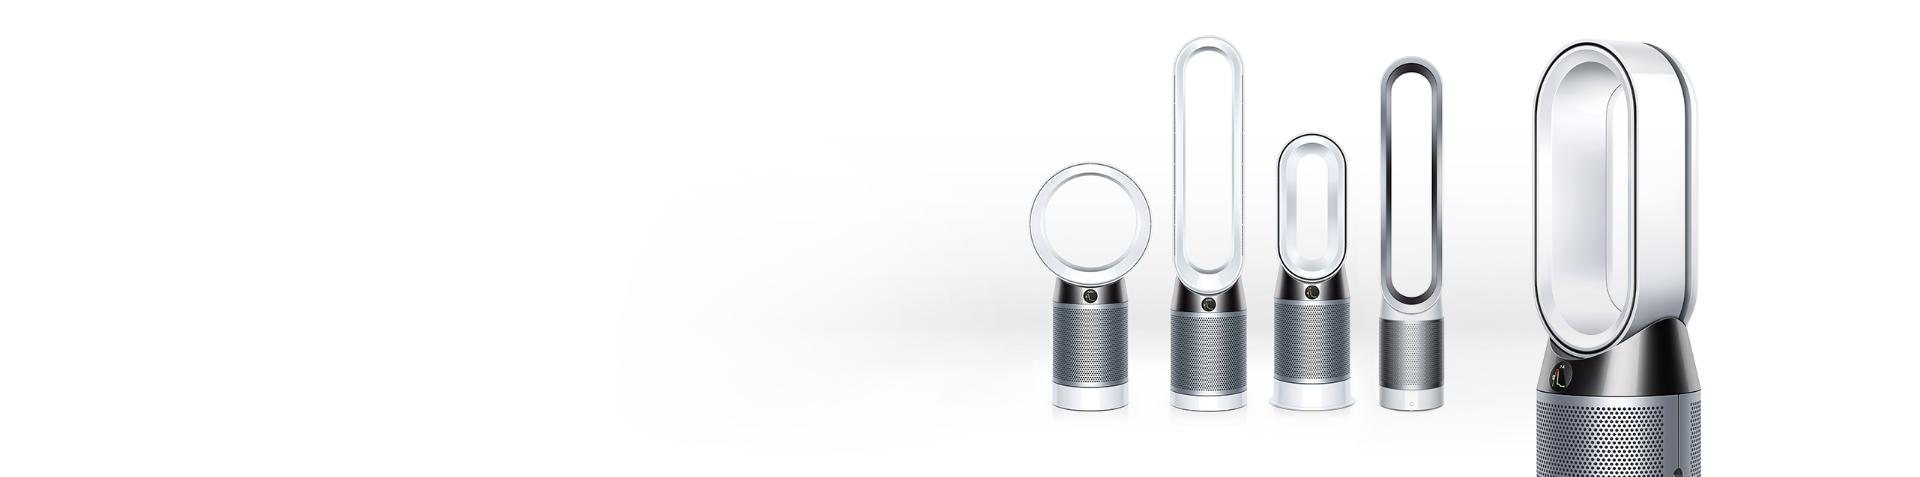 Best prices and latest offers on range of Dyson air purifiers and heaters